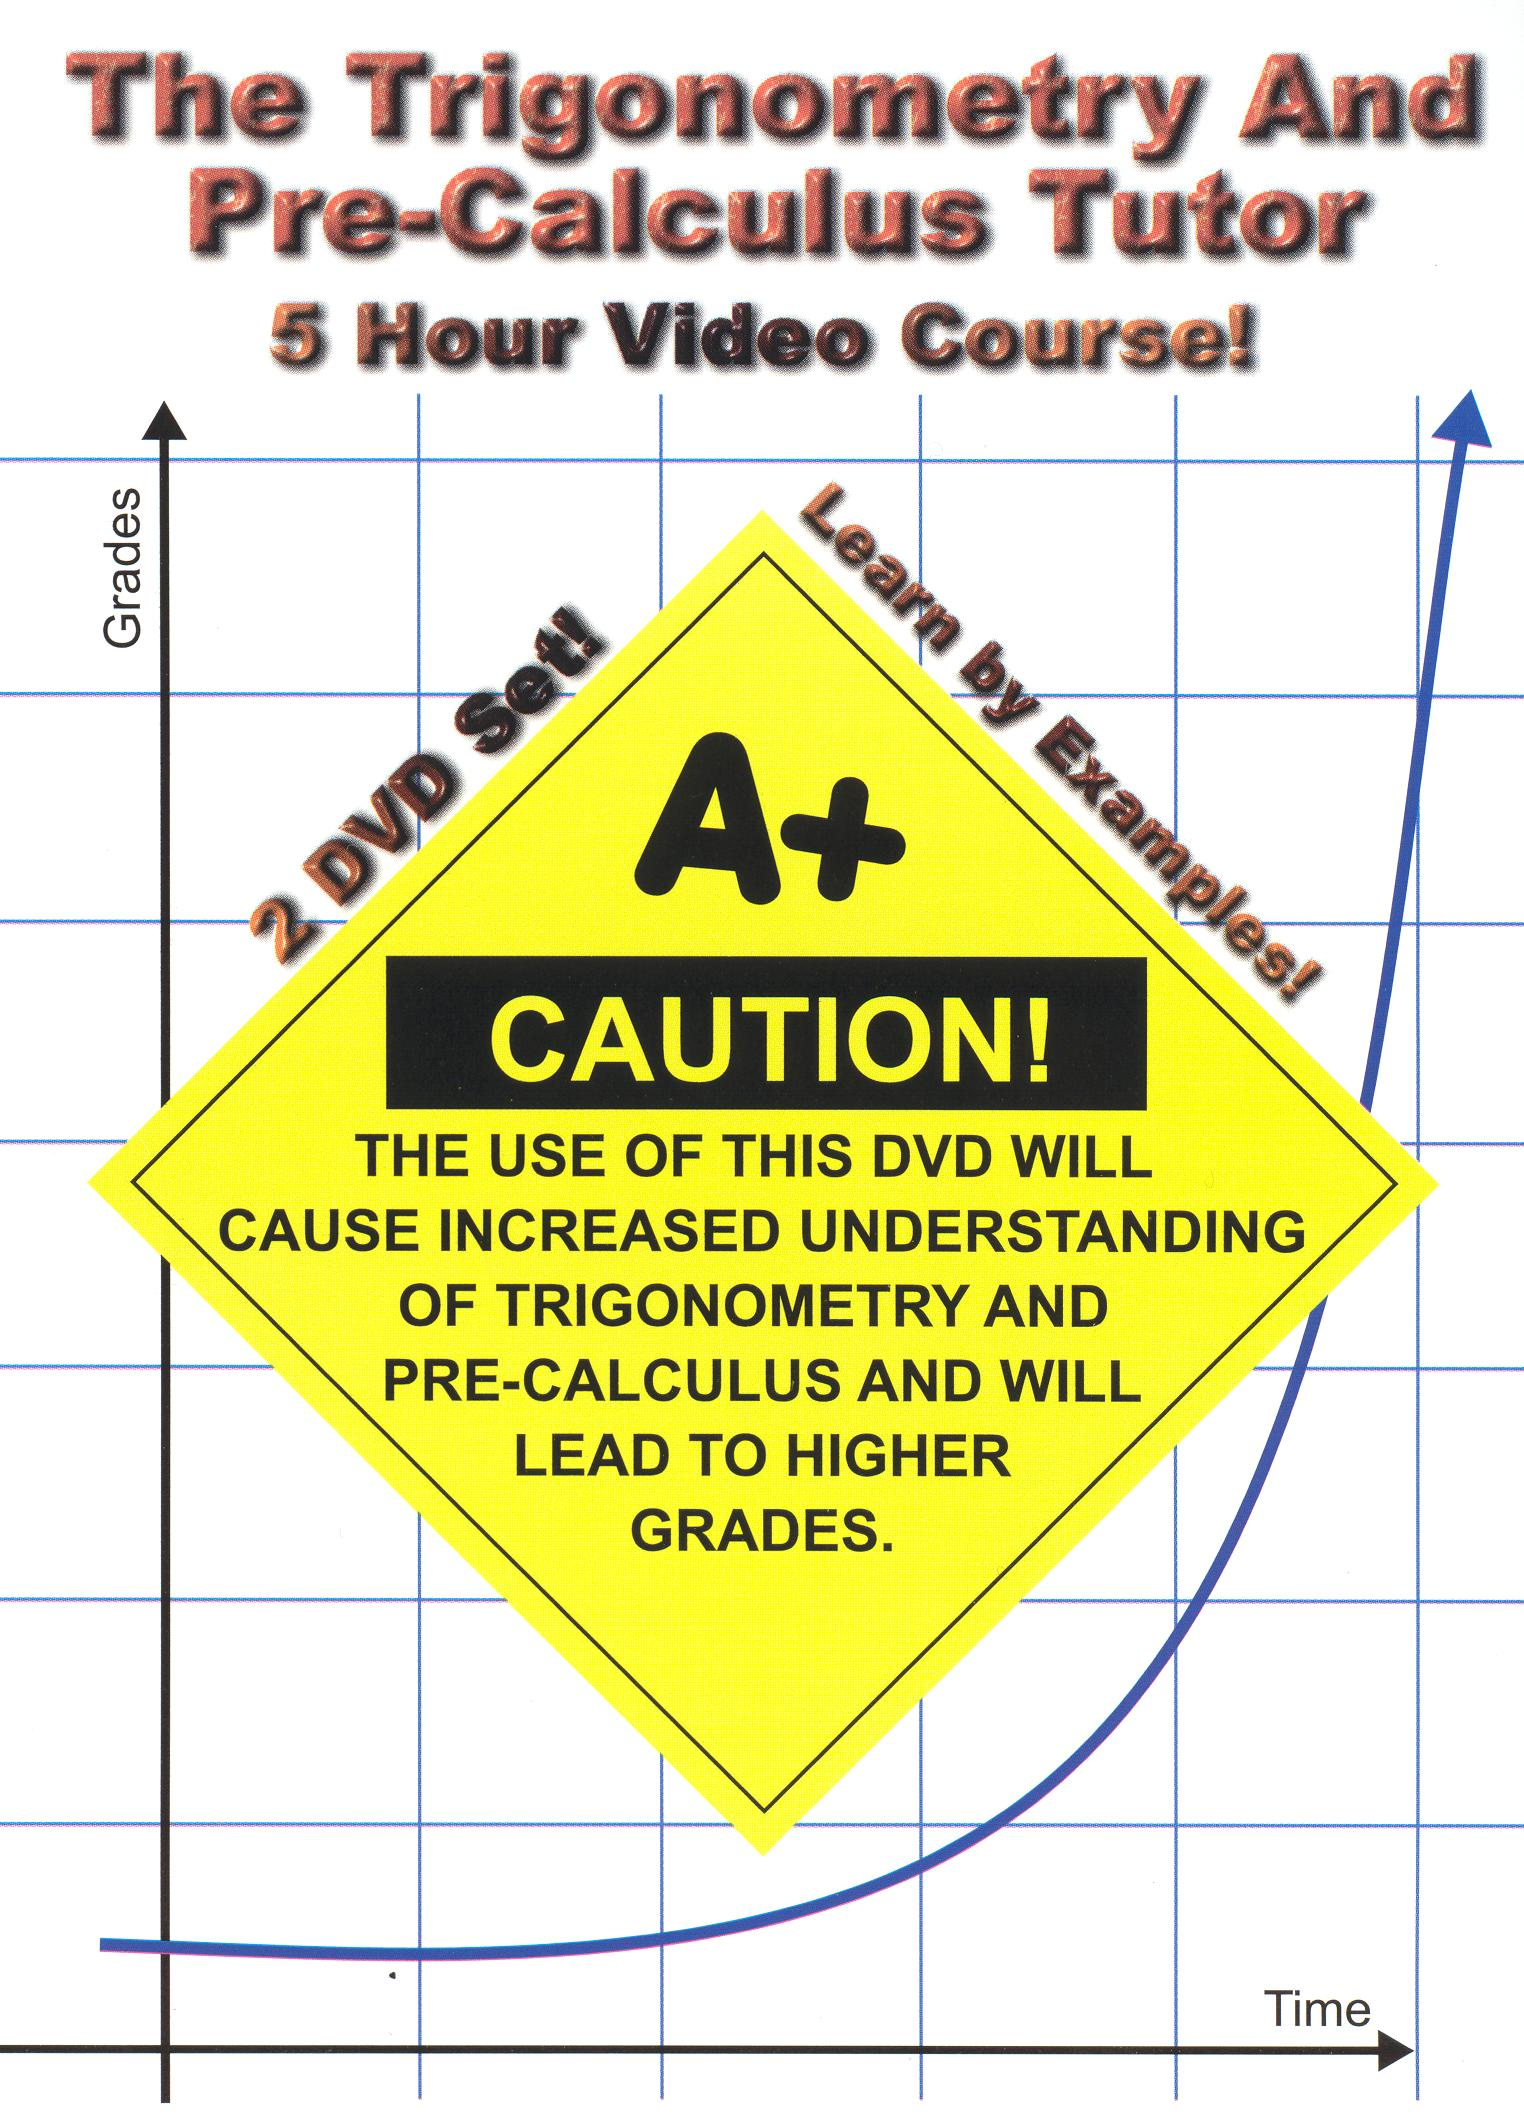 The Trigonometry & Pre-Calculus Tutor: 5 Hour Video